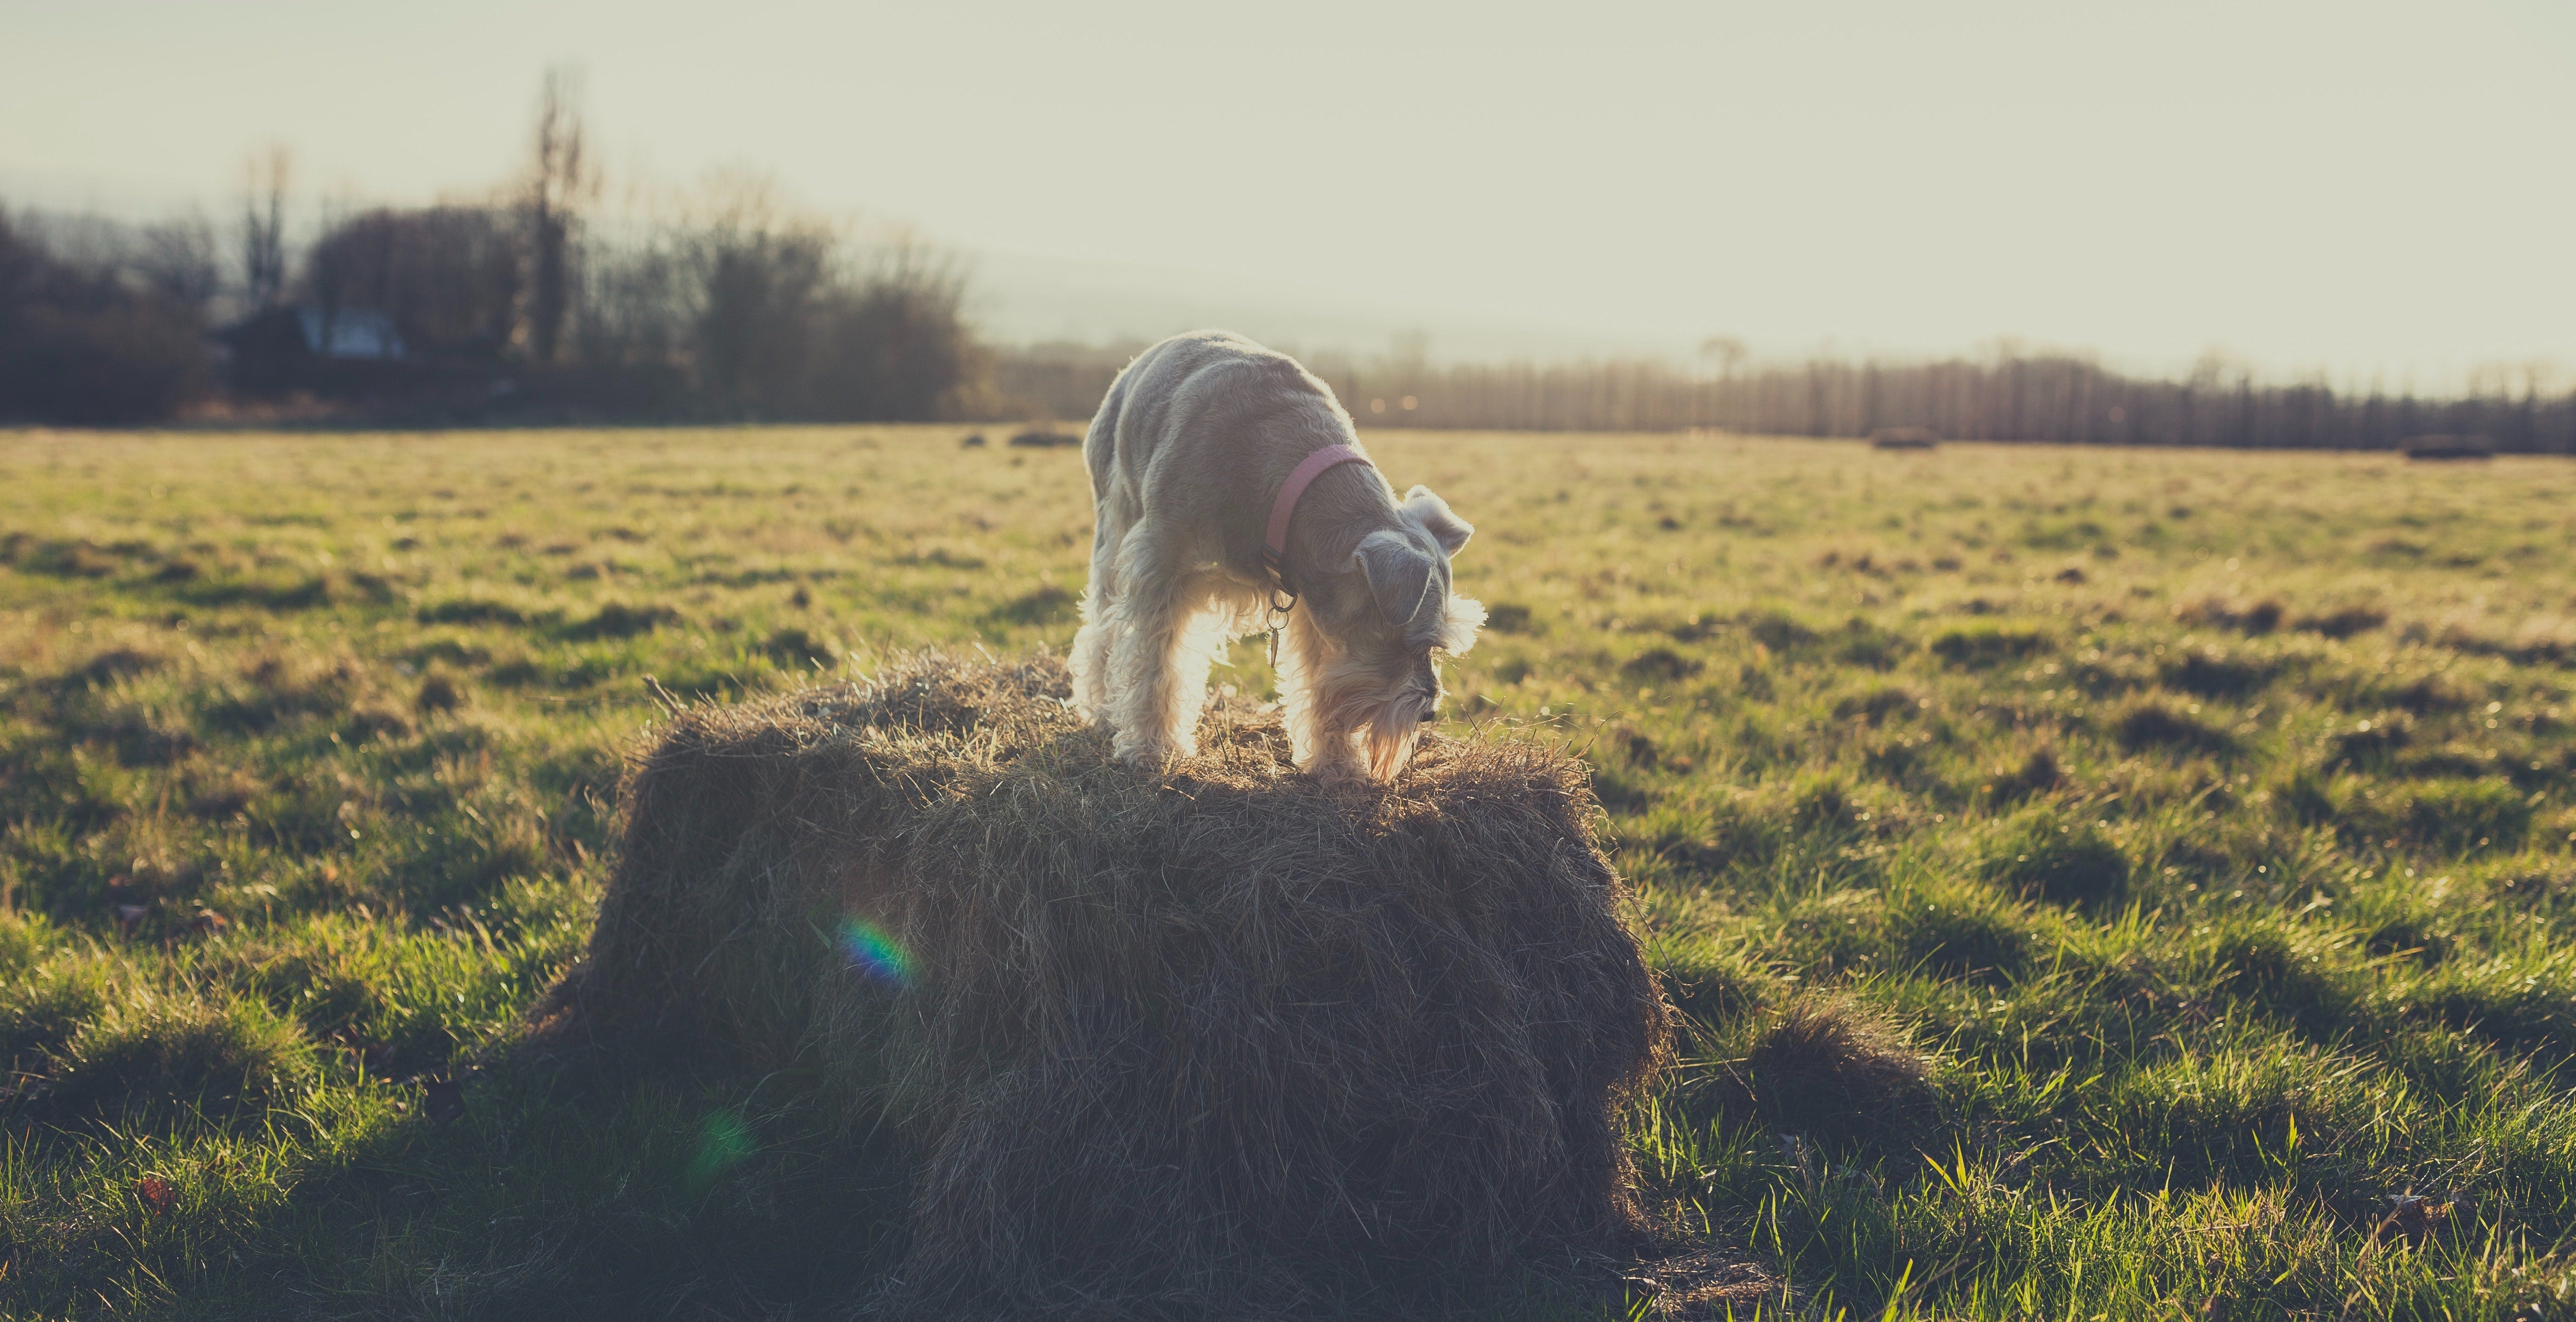 miniature schnauzer stands on a hay bale in a field